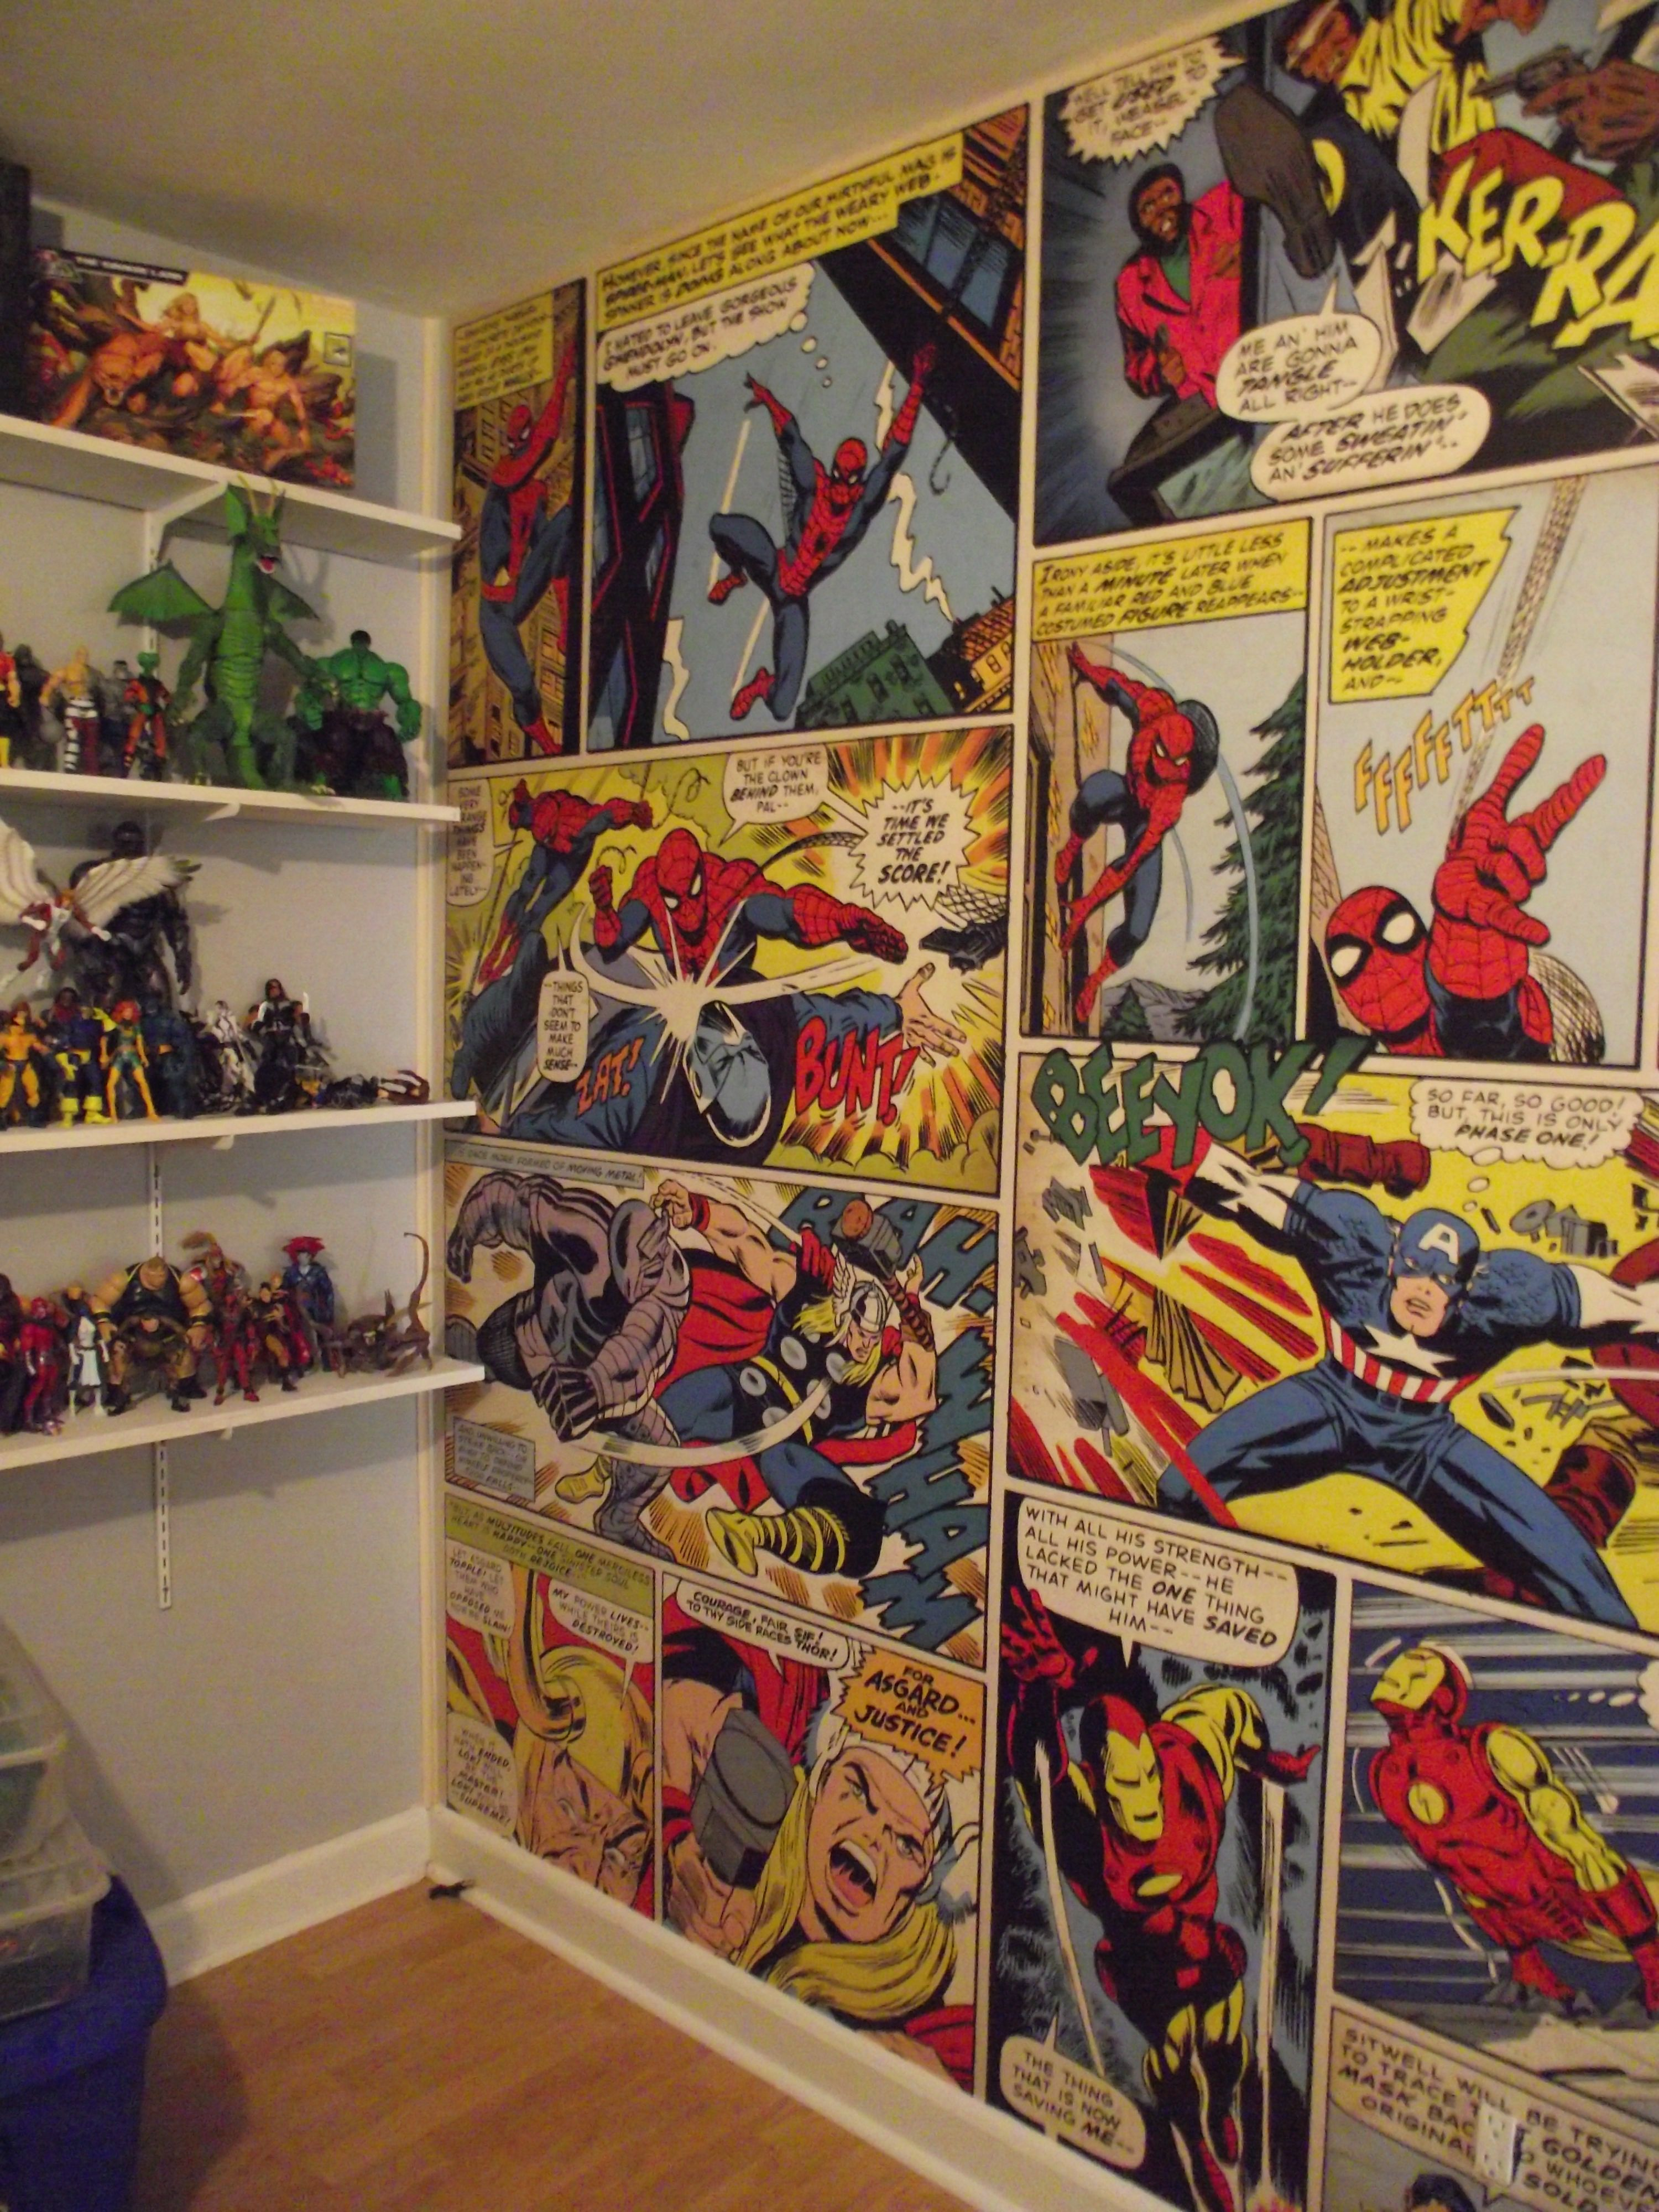 Comic Wall Decor Marvel Comics Wall Mural It Looks Amazing In The Figure Room